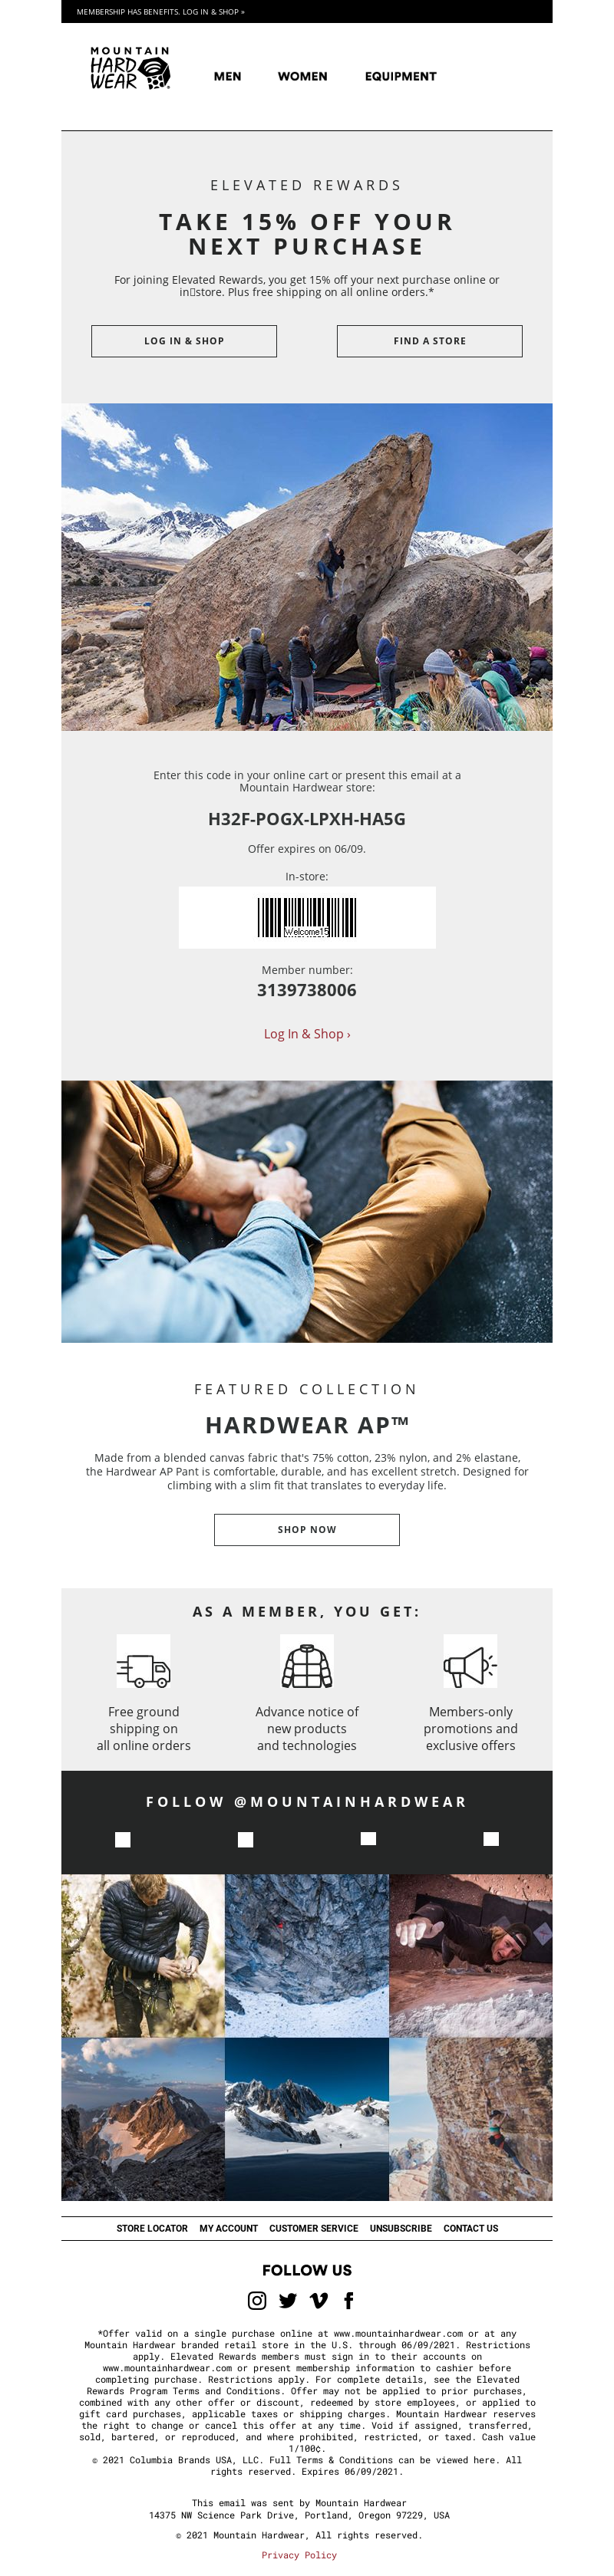 Mountain Hardwear - 15% off for Elevated Rewards members!